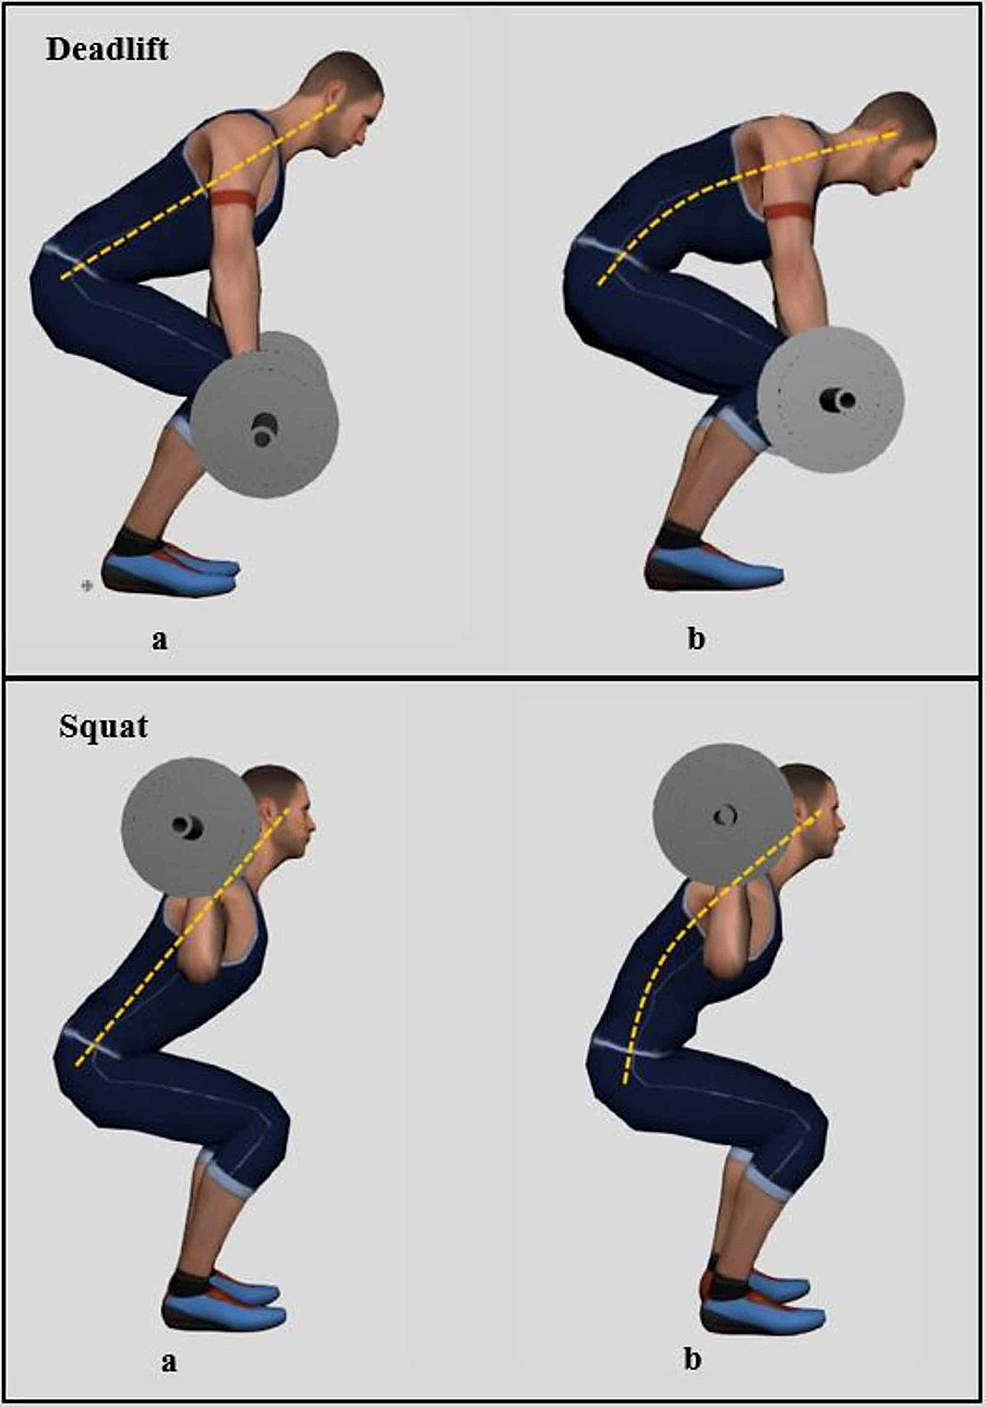 Figure-showing-the-proper-and-improper-execution-of-deadlifts-and-squats.-During-the-deadlift,-the-athlete-lifts-the-bar-until-legs-get-locked-and-the-lifter's-posture-is-straight-(Deadlift-a),-and-during-the-squat,-the-athlete-removes-the-bar-from-the-rack-and-lowers-the-body-until-the-hip-joint-gets-lower-than-the-knees-(Squat-a).-Improper-execution-of-these-movements-may-compromise-proper-body-posture-and-lead-to-body-tilt-and-back-flexion-as-seen-in-(Deadlift-b-and-Squat-b).-As-the-body-is-tilted-forward,-the-effects-of-the-loads-lifted-increase-dramatically-and-injury-risk-rises.